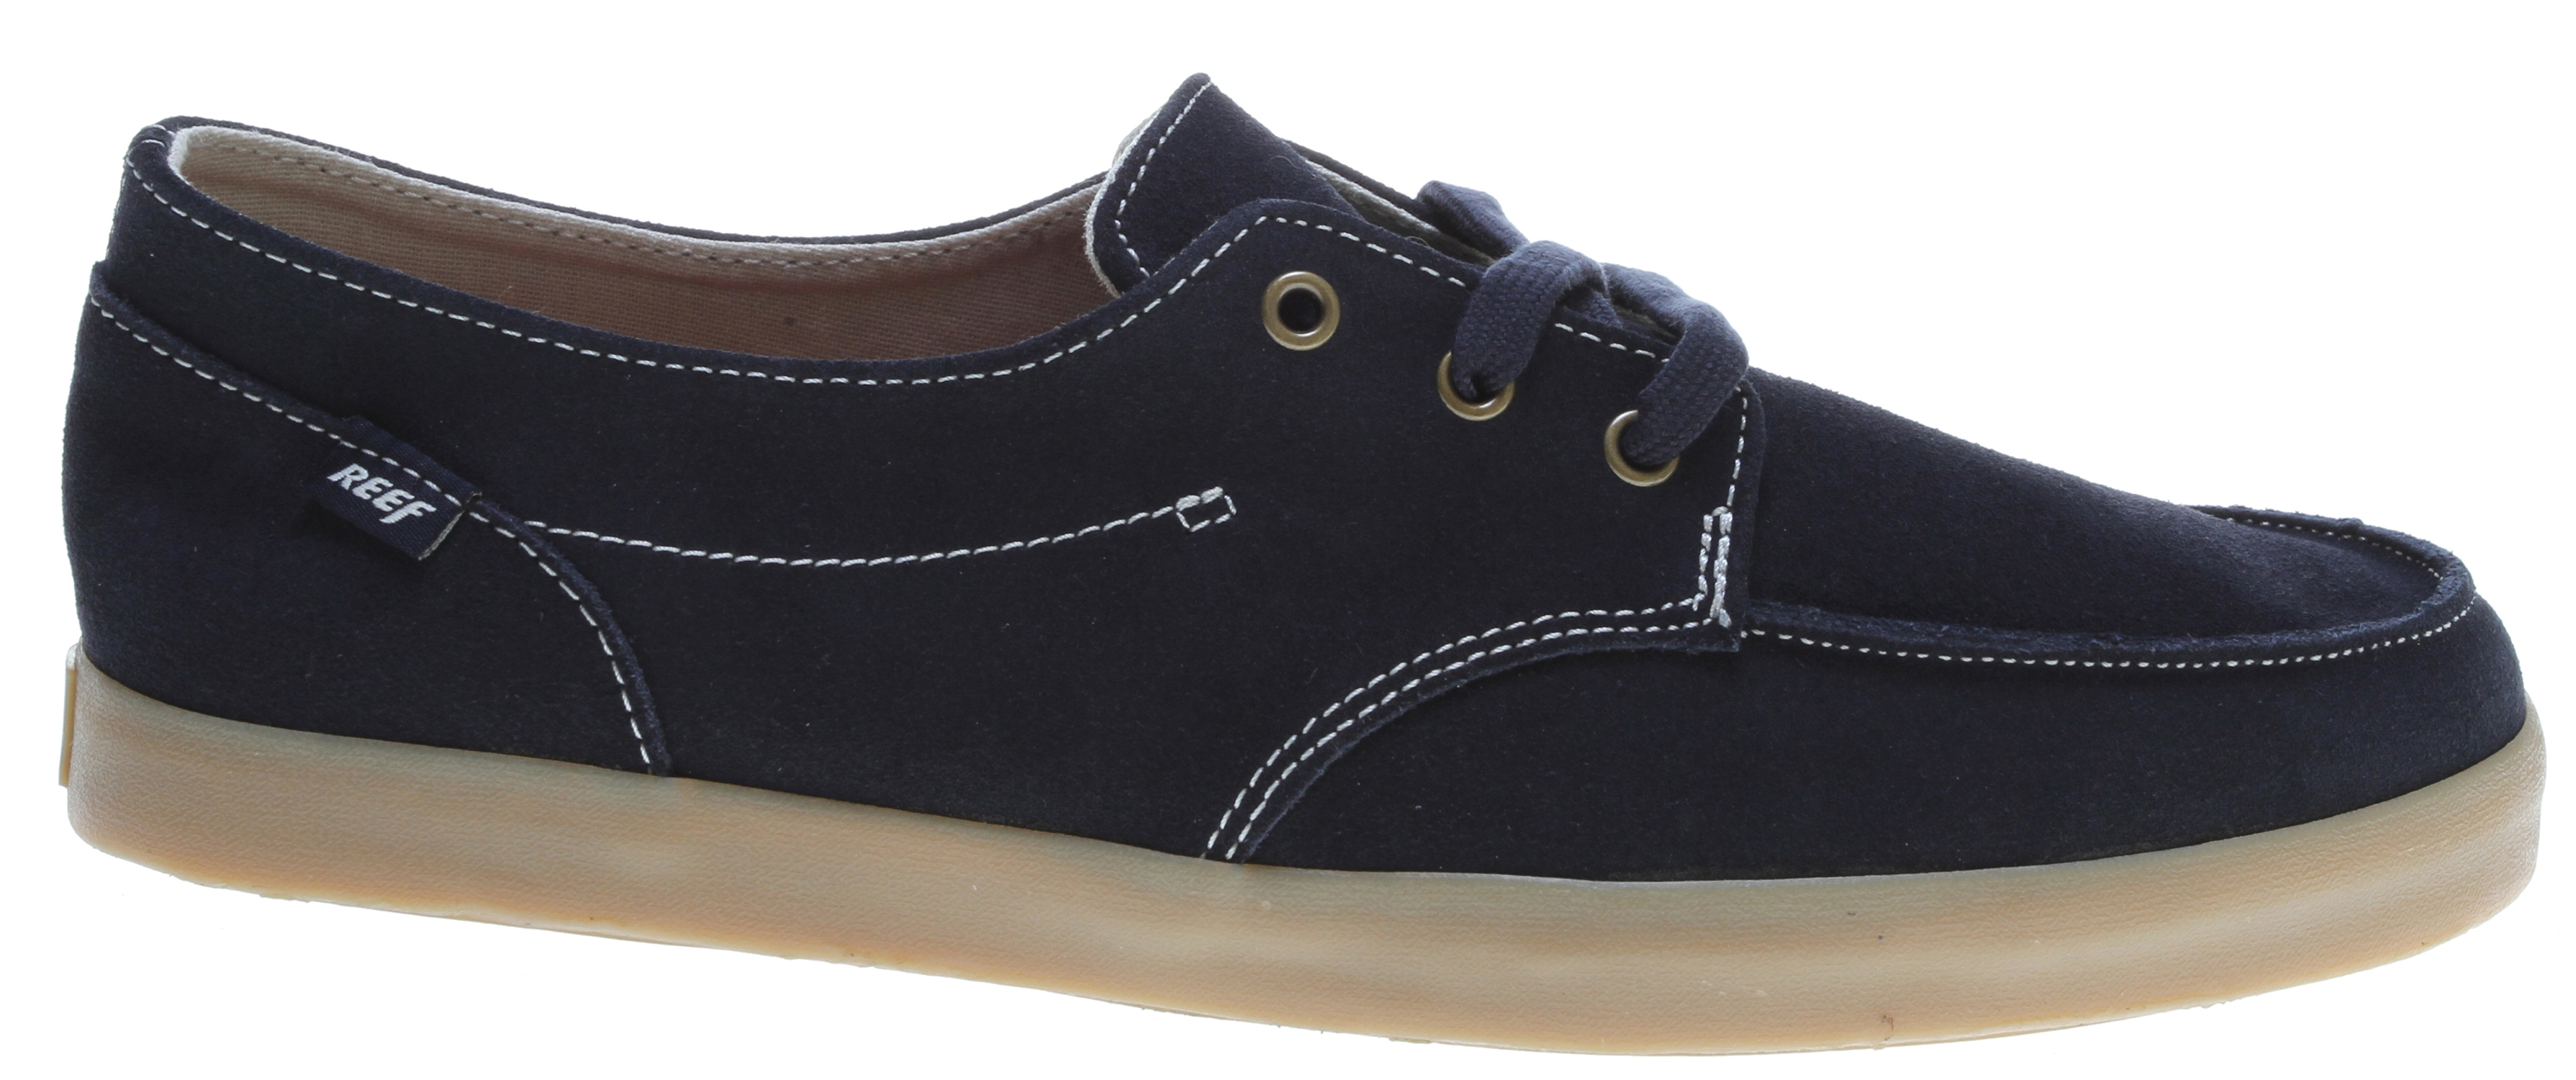 Surf Whether you're boardwalk-bound or making your way downtown, you'll rock the casual look in this hip leather lace-up from Reef. The Deckhand 2 LE Oxford features a soft yet sturdy upper, accented with contrast stitching and logo detail. The canvas lining keeps it comfy and breathable, while the thick rubber midsole gives it a light, grippy feel as well as plenty of retro flair.Key Features of the Reef Deck Hand 2 Le Shoes: Leather upper Fabric lining Manmade sole Anatomical arch support - $45.95